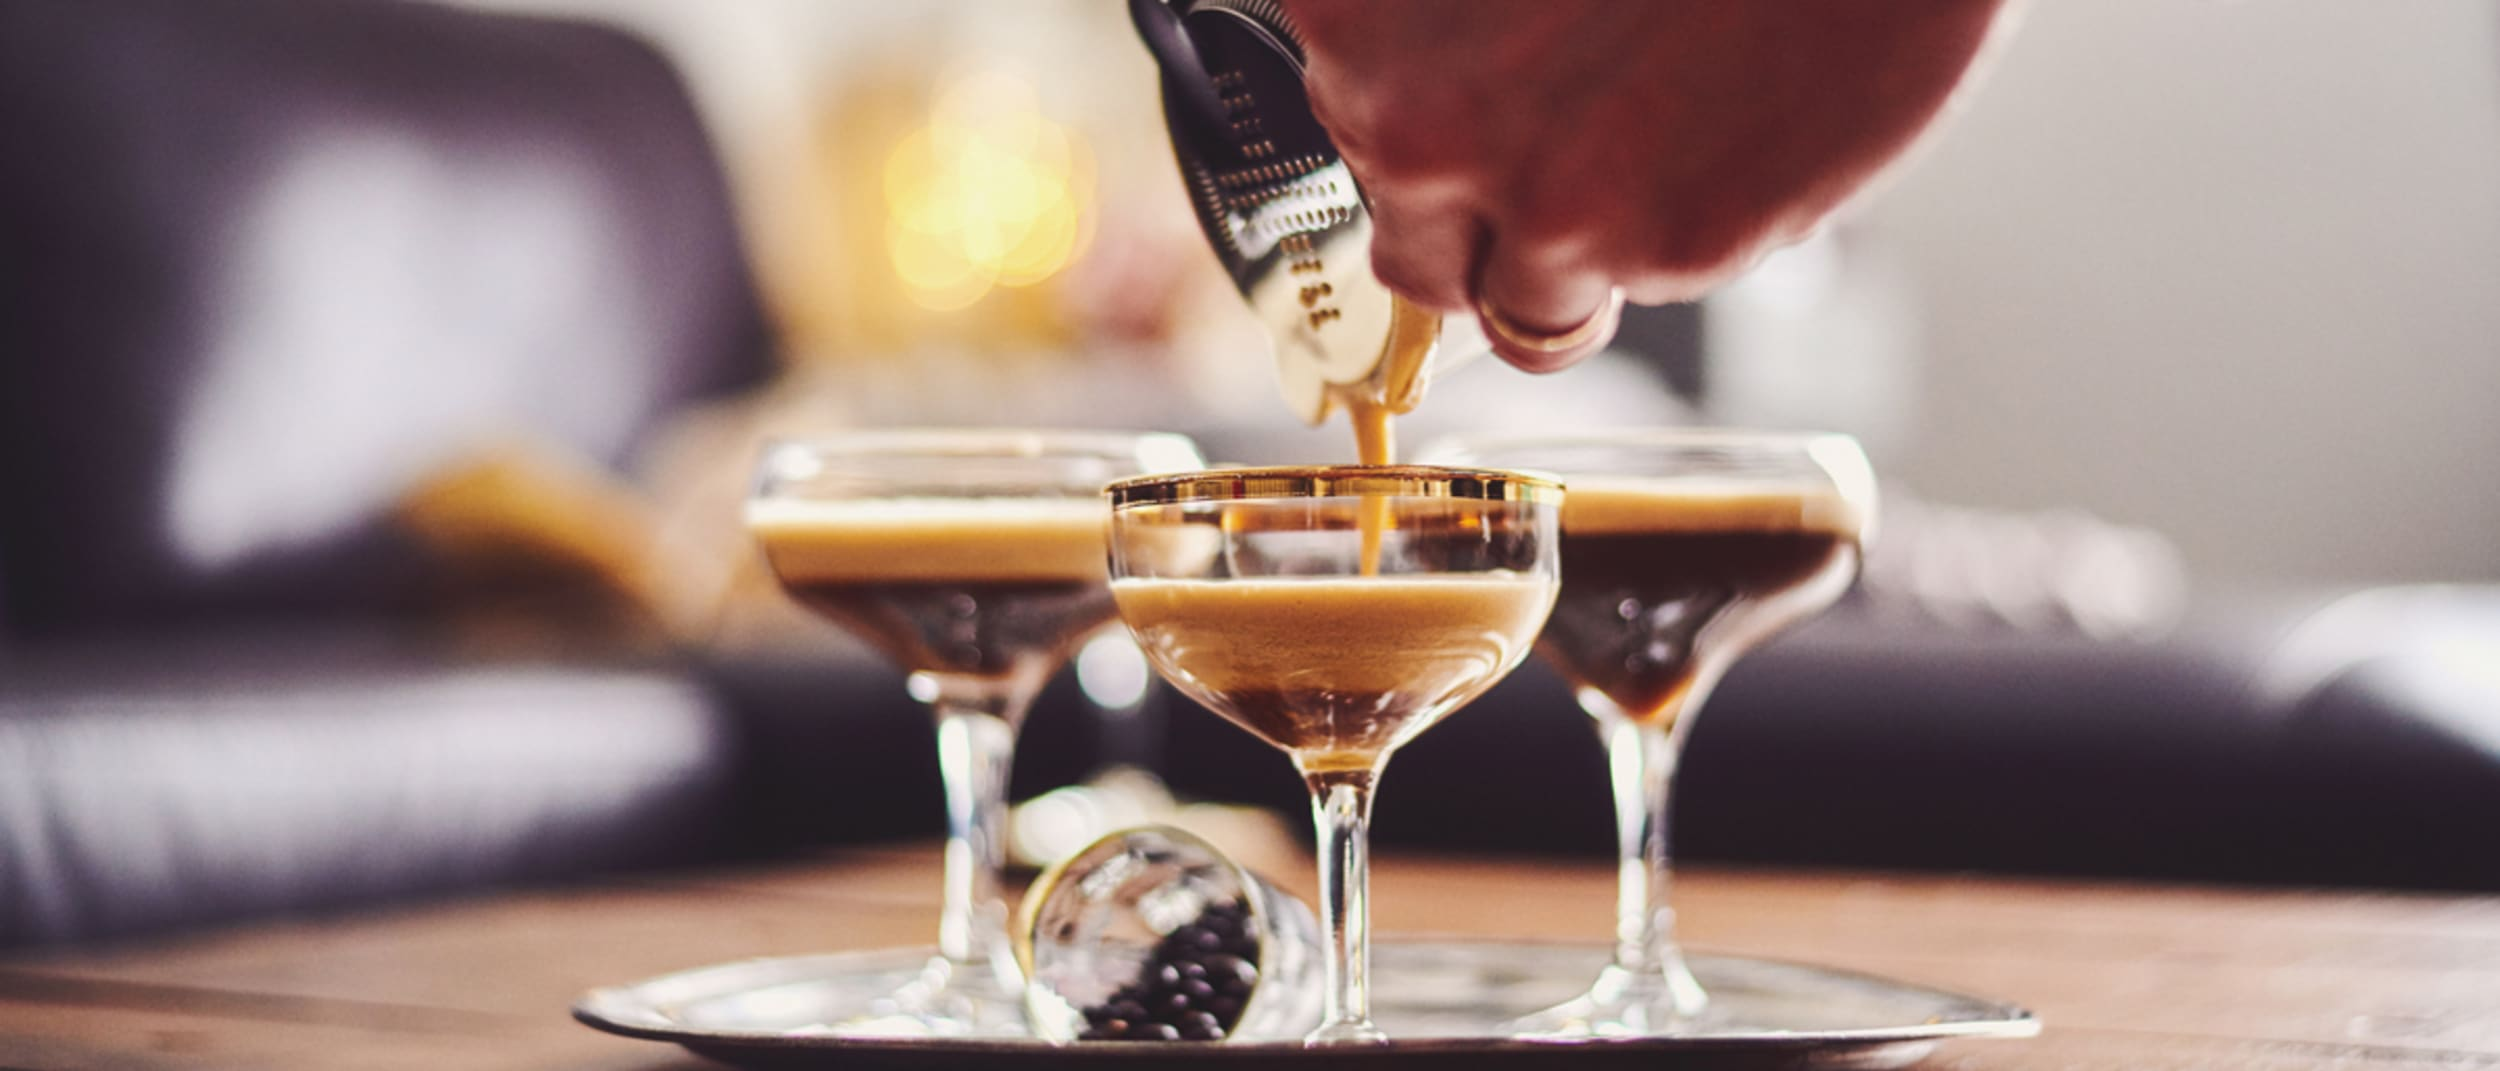 Espresso martini workshop // BOOKED OUT